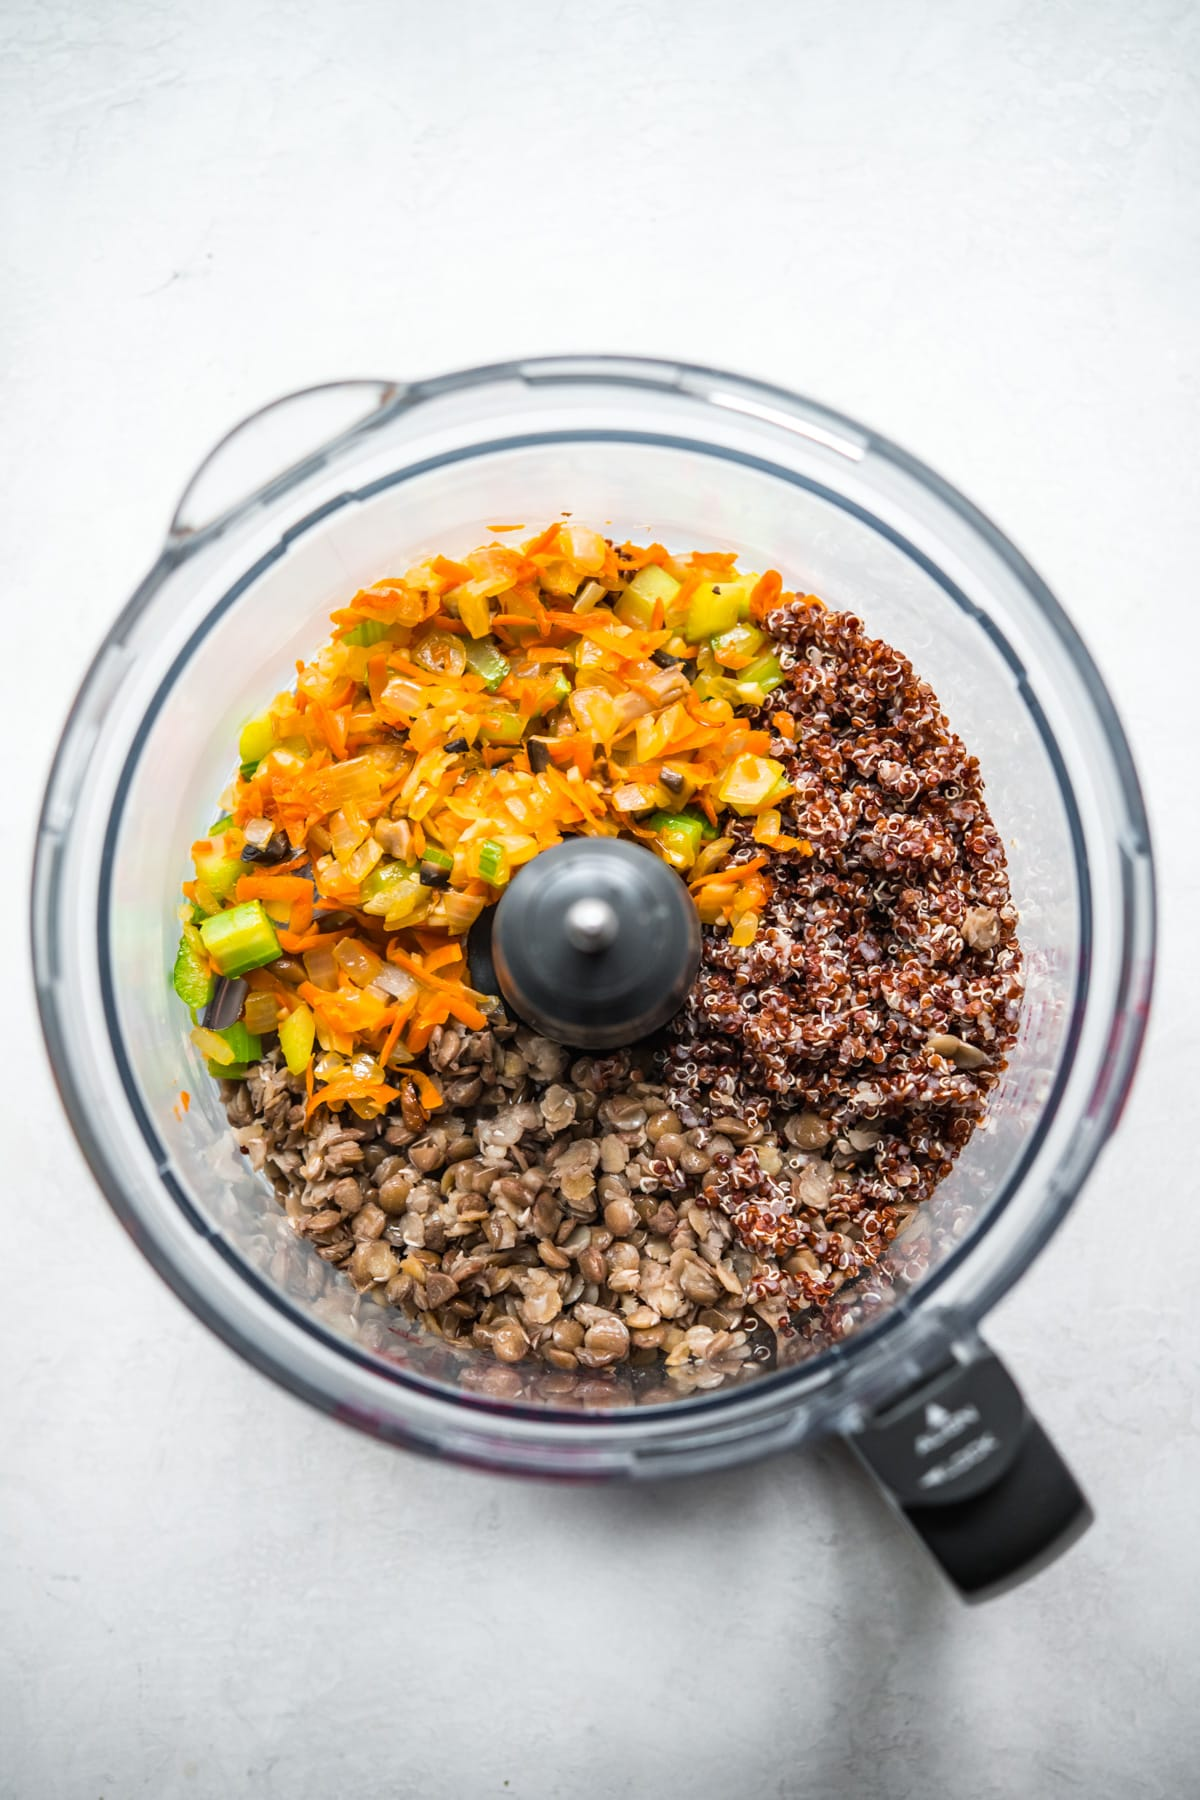 overhead view of cooked vegetables, lentils and quinoa in a food processor.